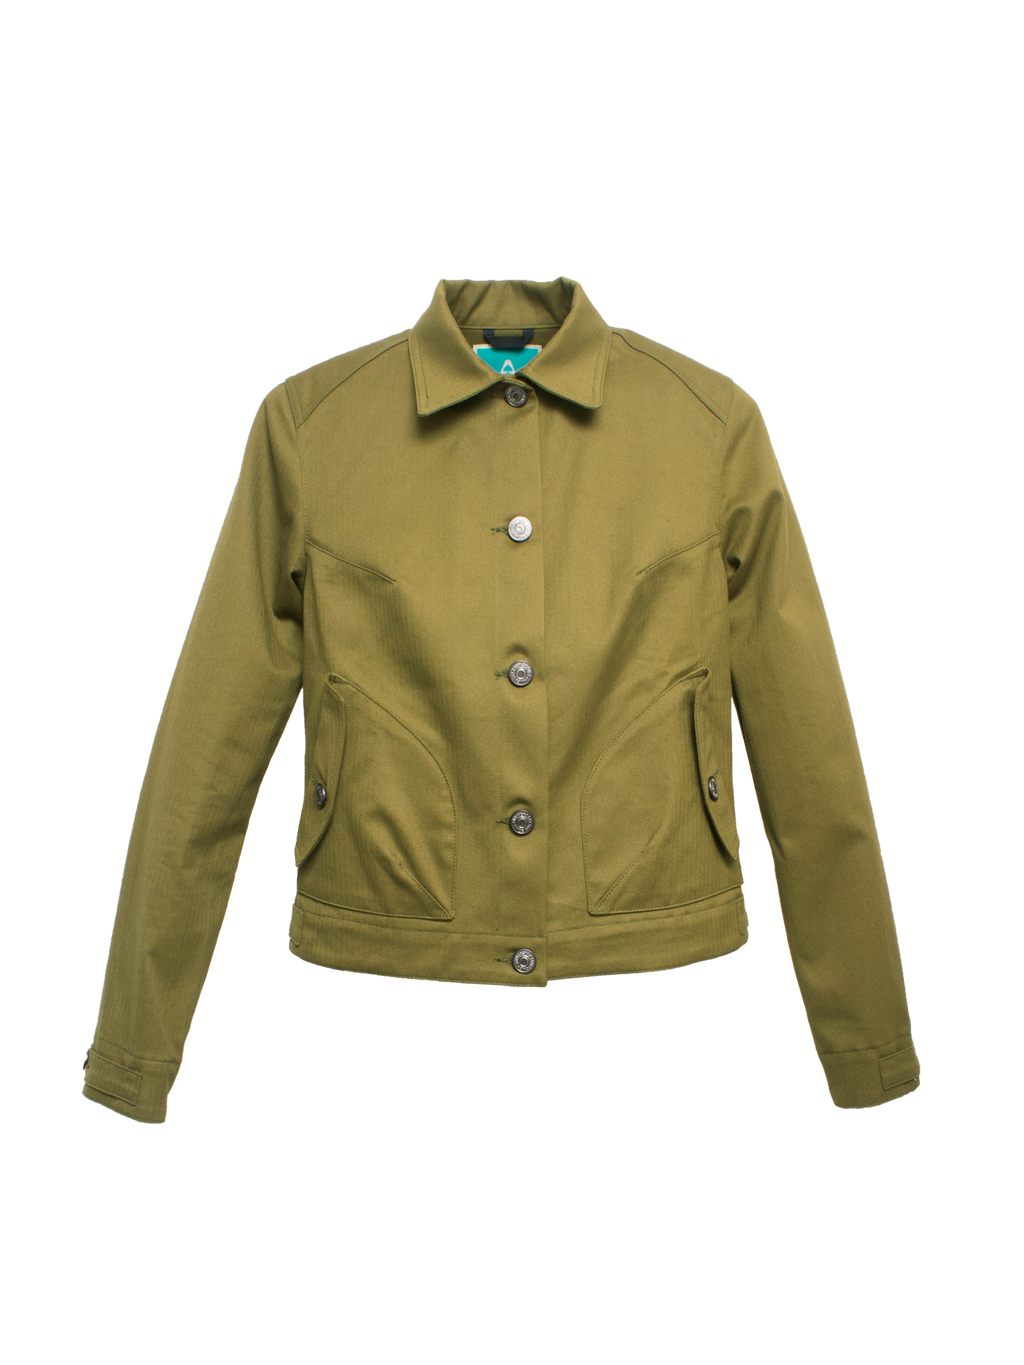 Q601 AURORA Womens Shirt Jacket